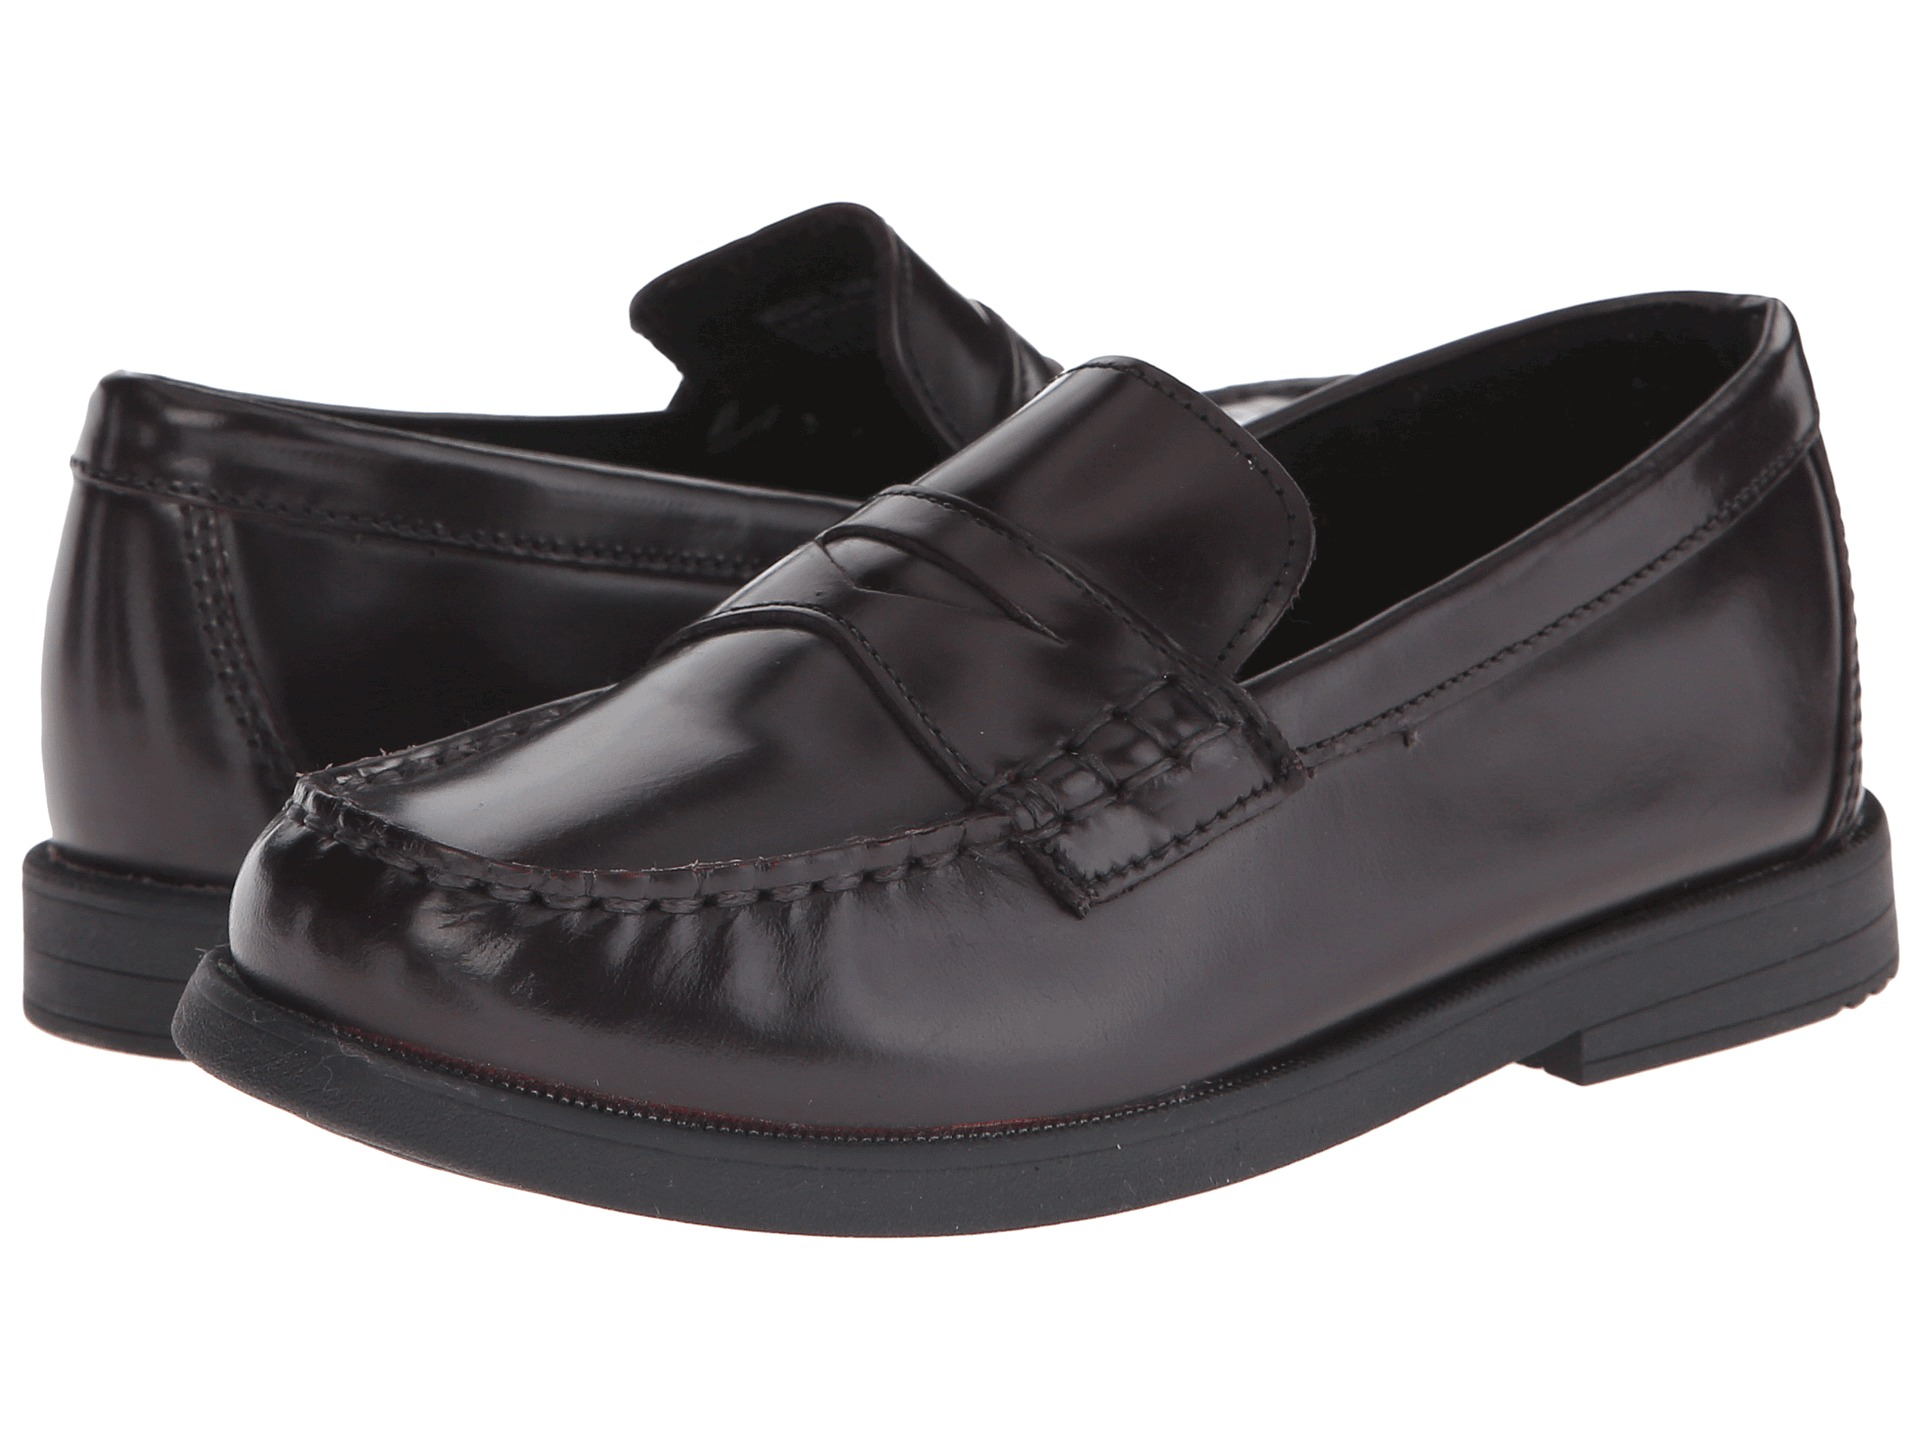 Shop zulily and save up to 70% on casual and formal loafers for boys. Discover kids' loafers in a variety of colors and styles all at an affordable price.